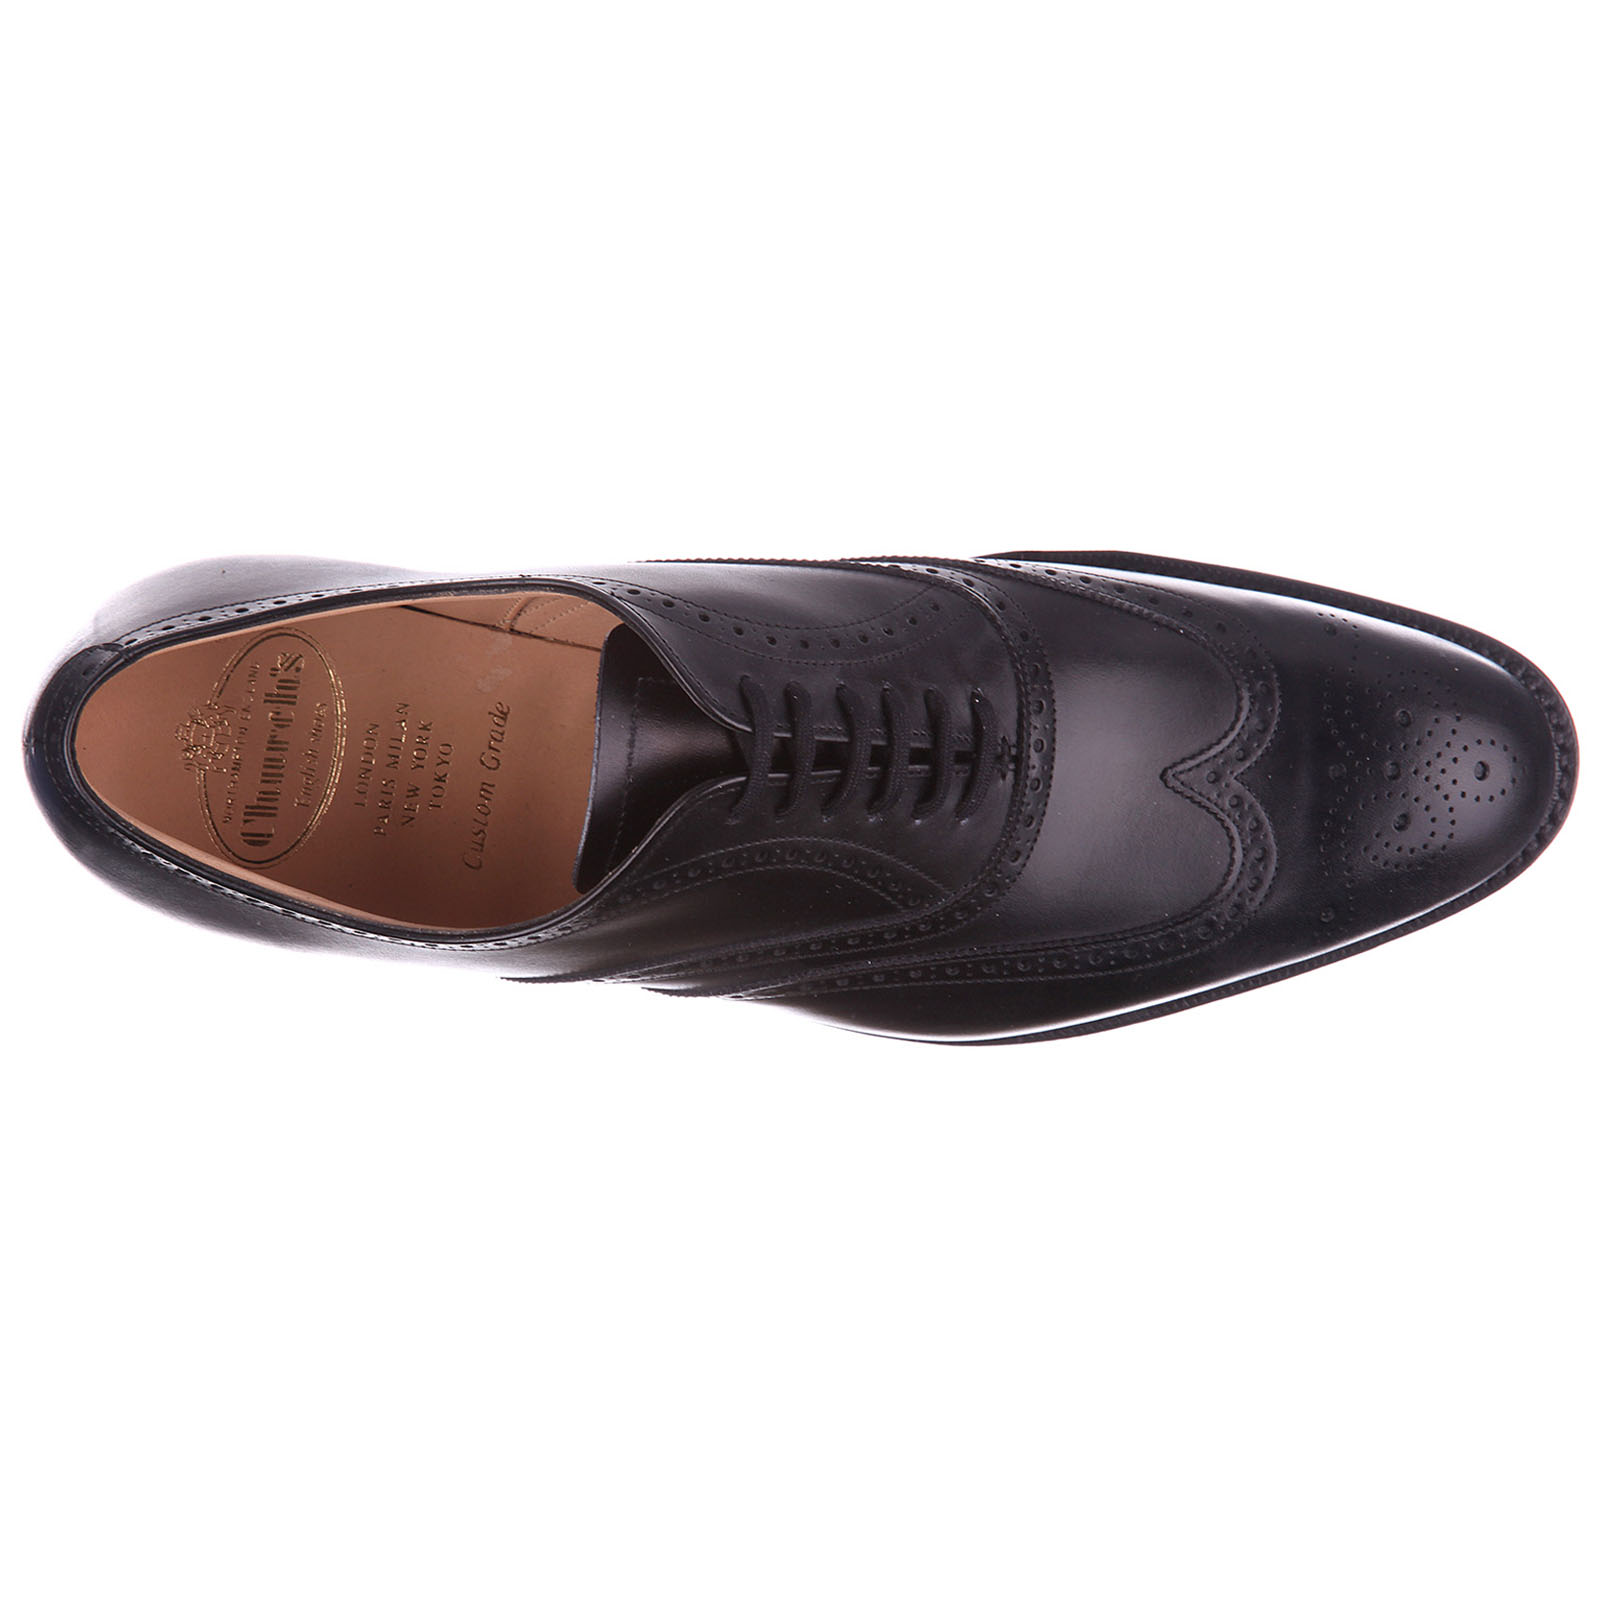 Men's classic leather lace up laced formal shoes brogue berlin